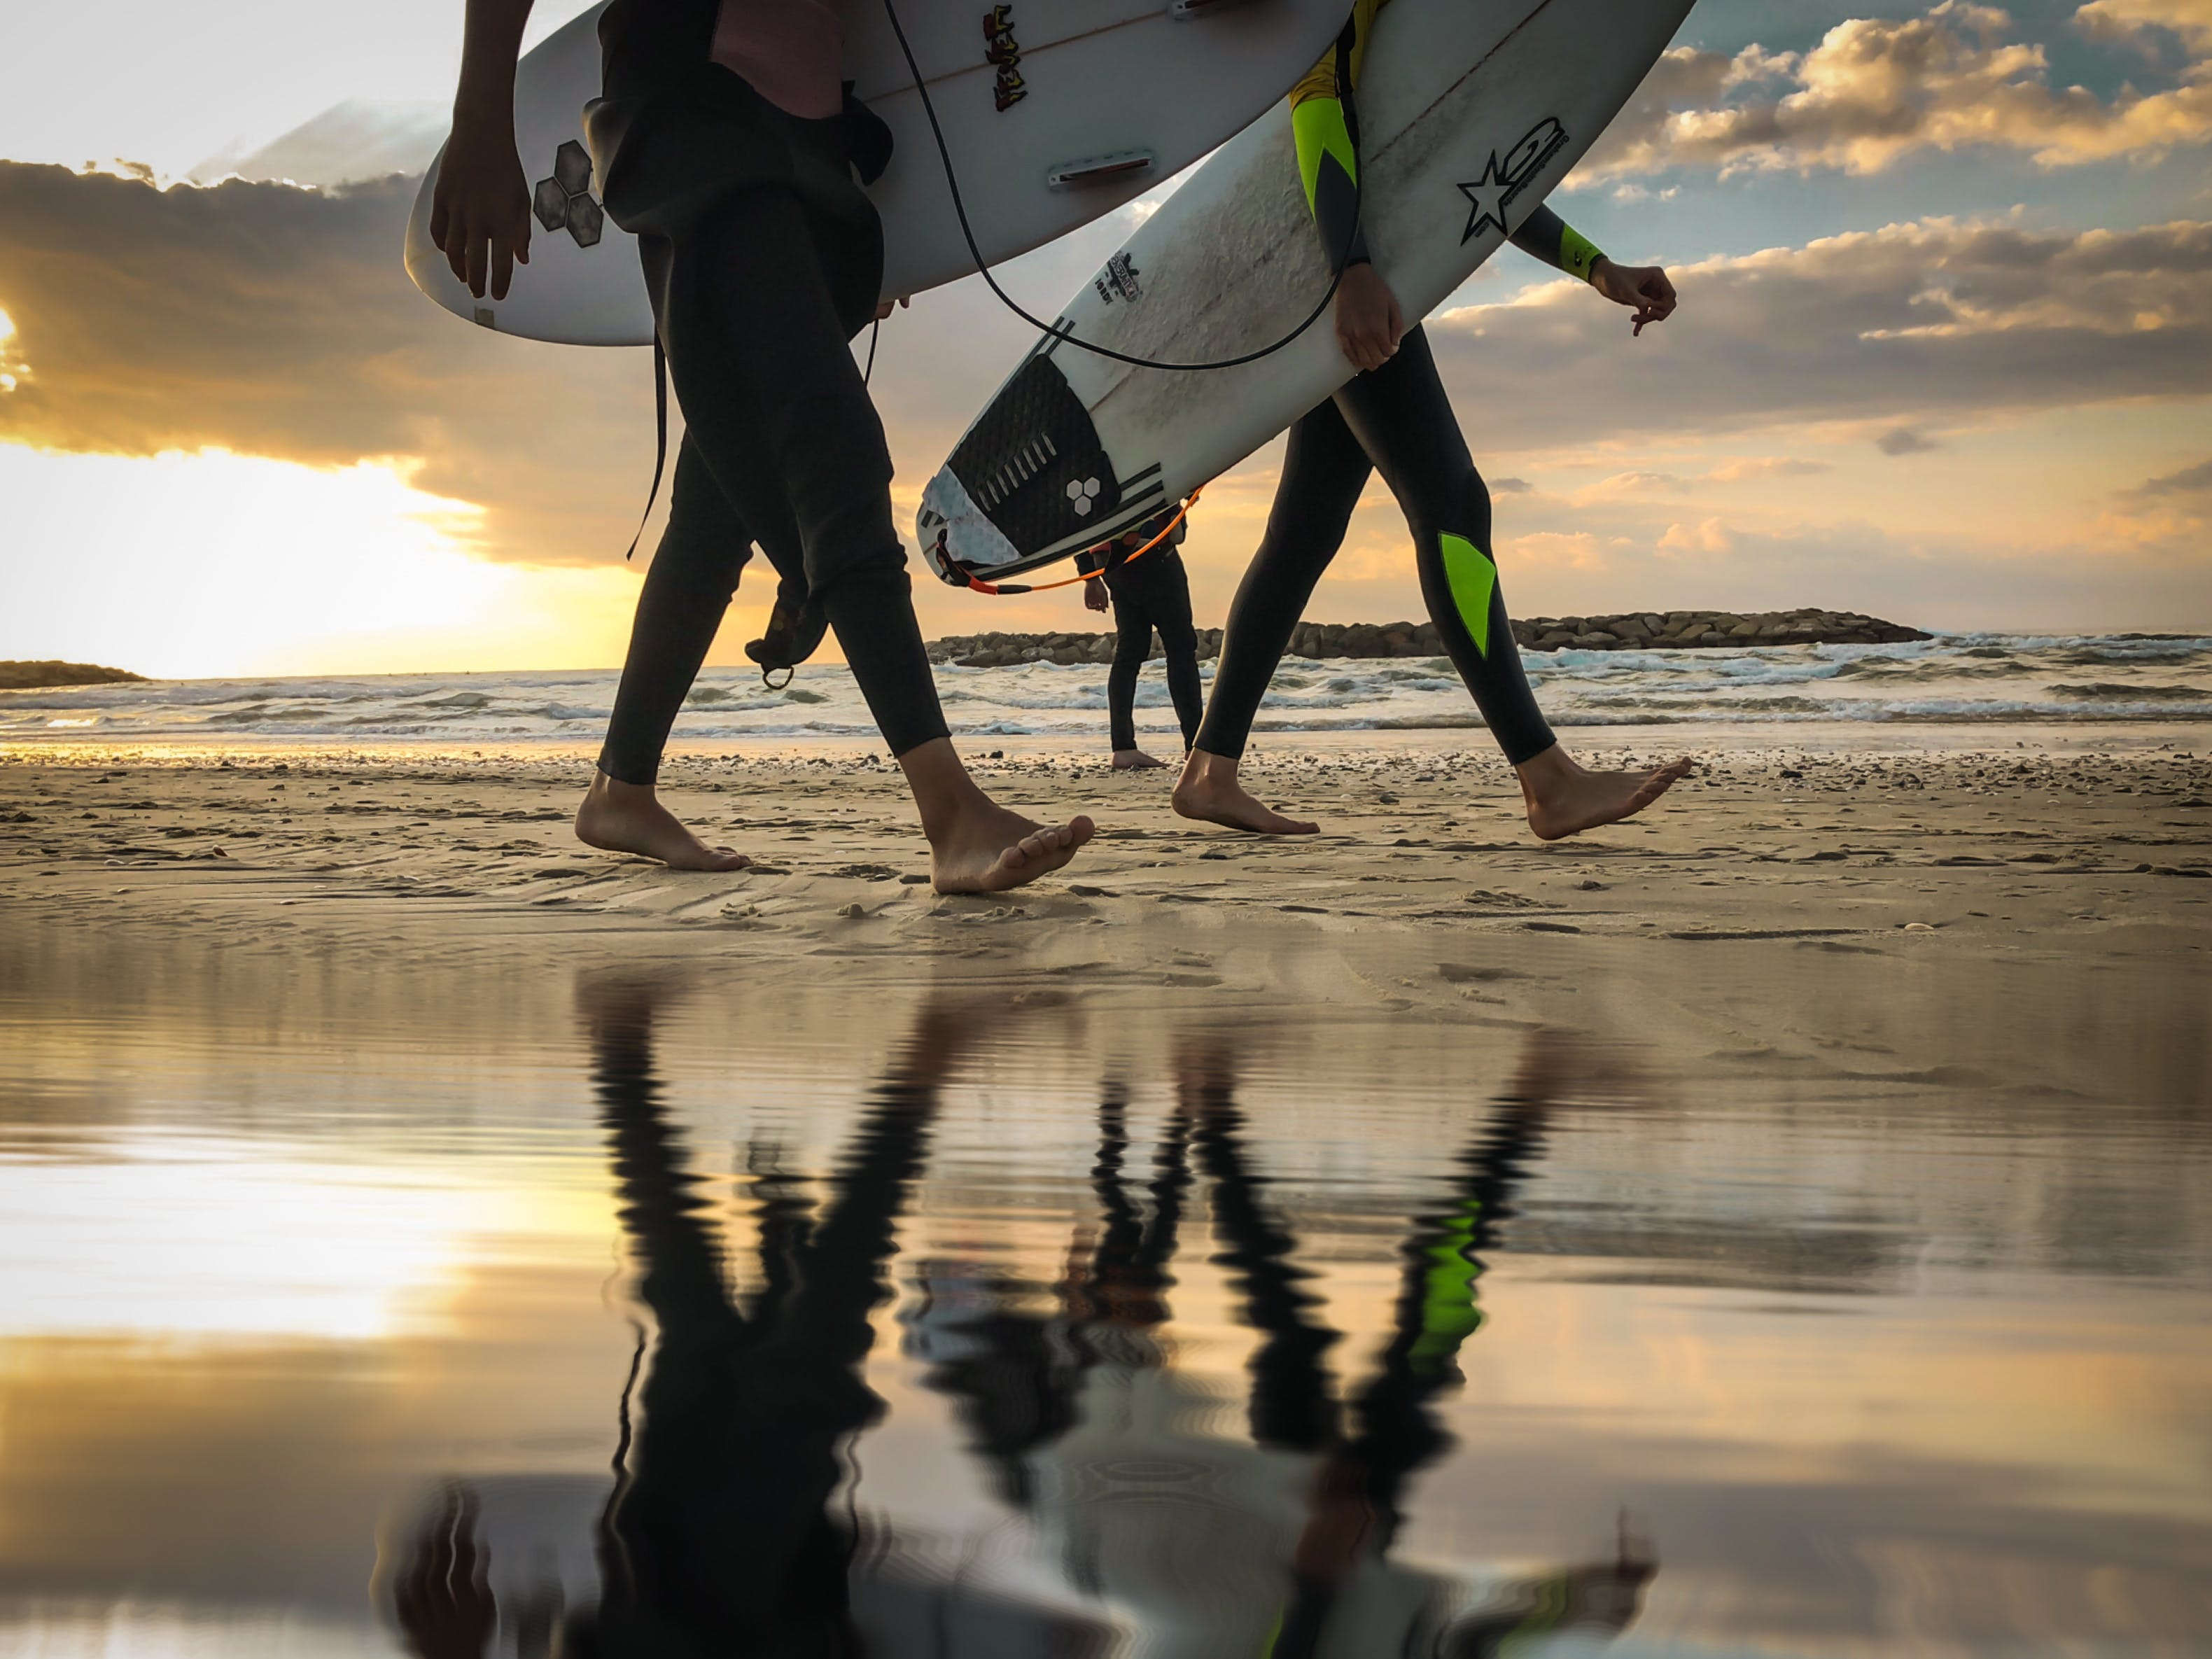 Free stock photo of beach, reflection, surf, surfer